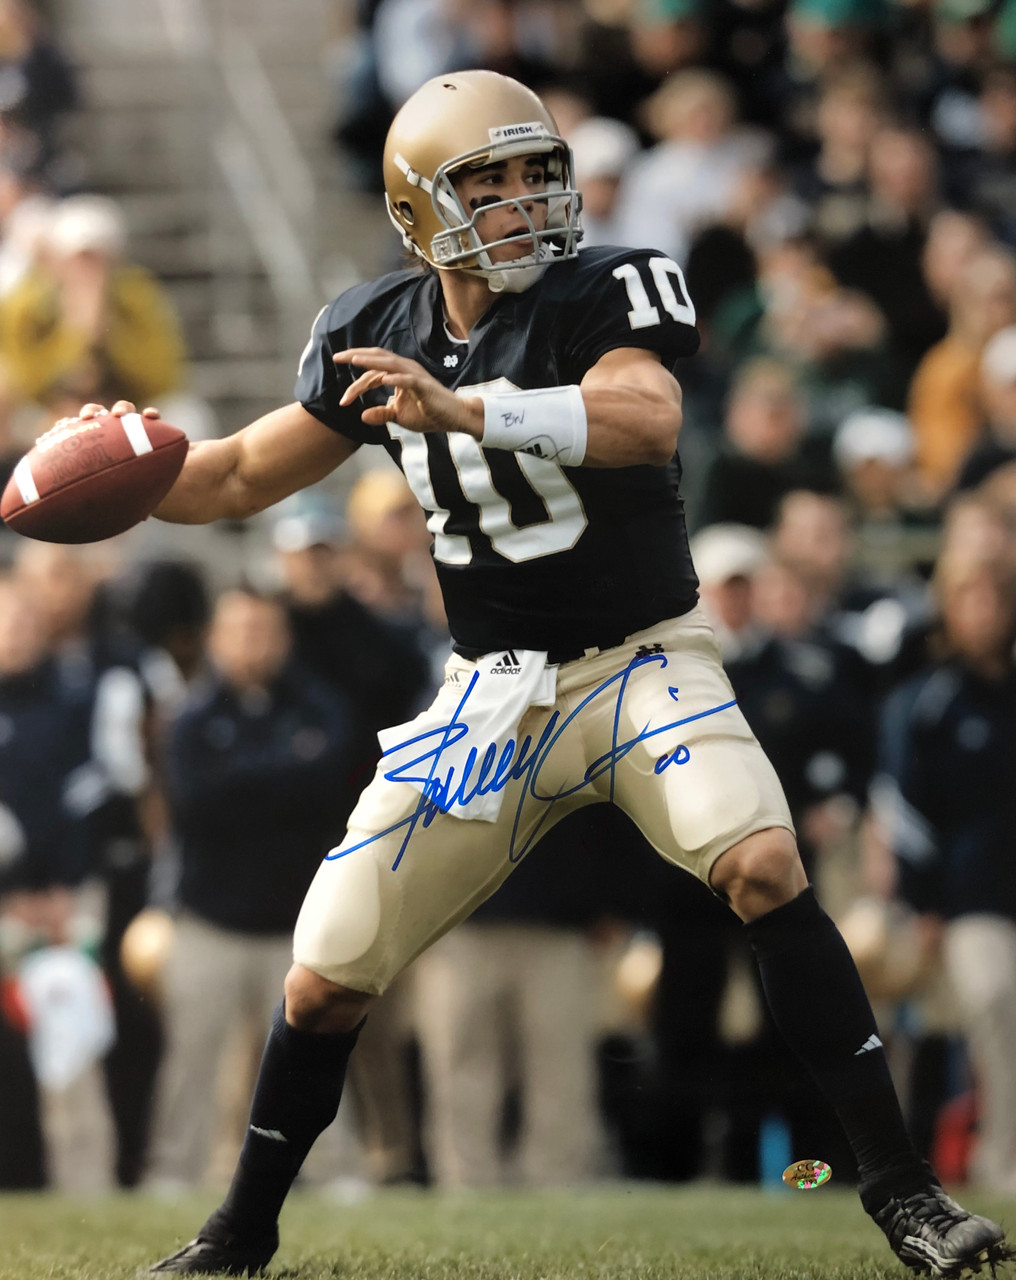 b21ed95bc51 Brady Quinn Notre Dame Fighting Irish 16-3 16x20 Autographed Photo - Certified  Authentic